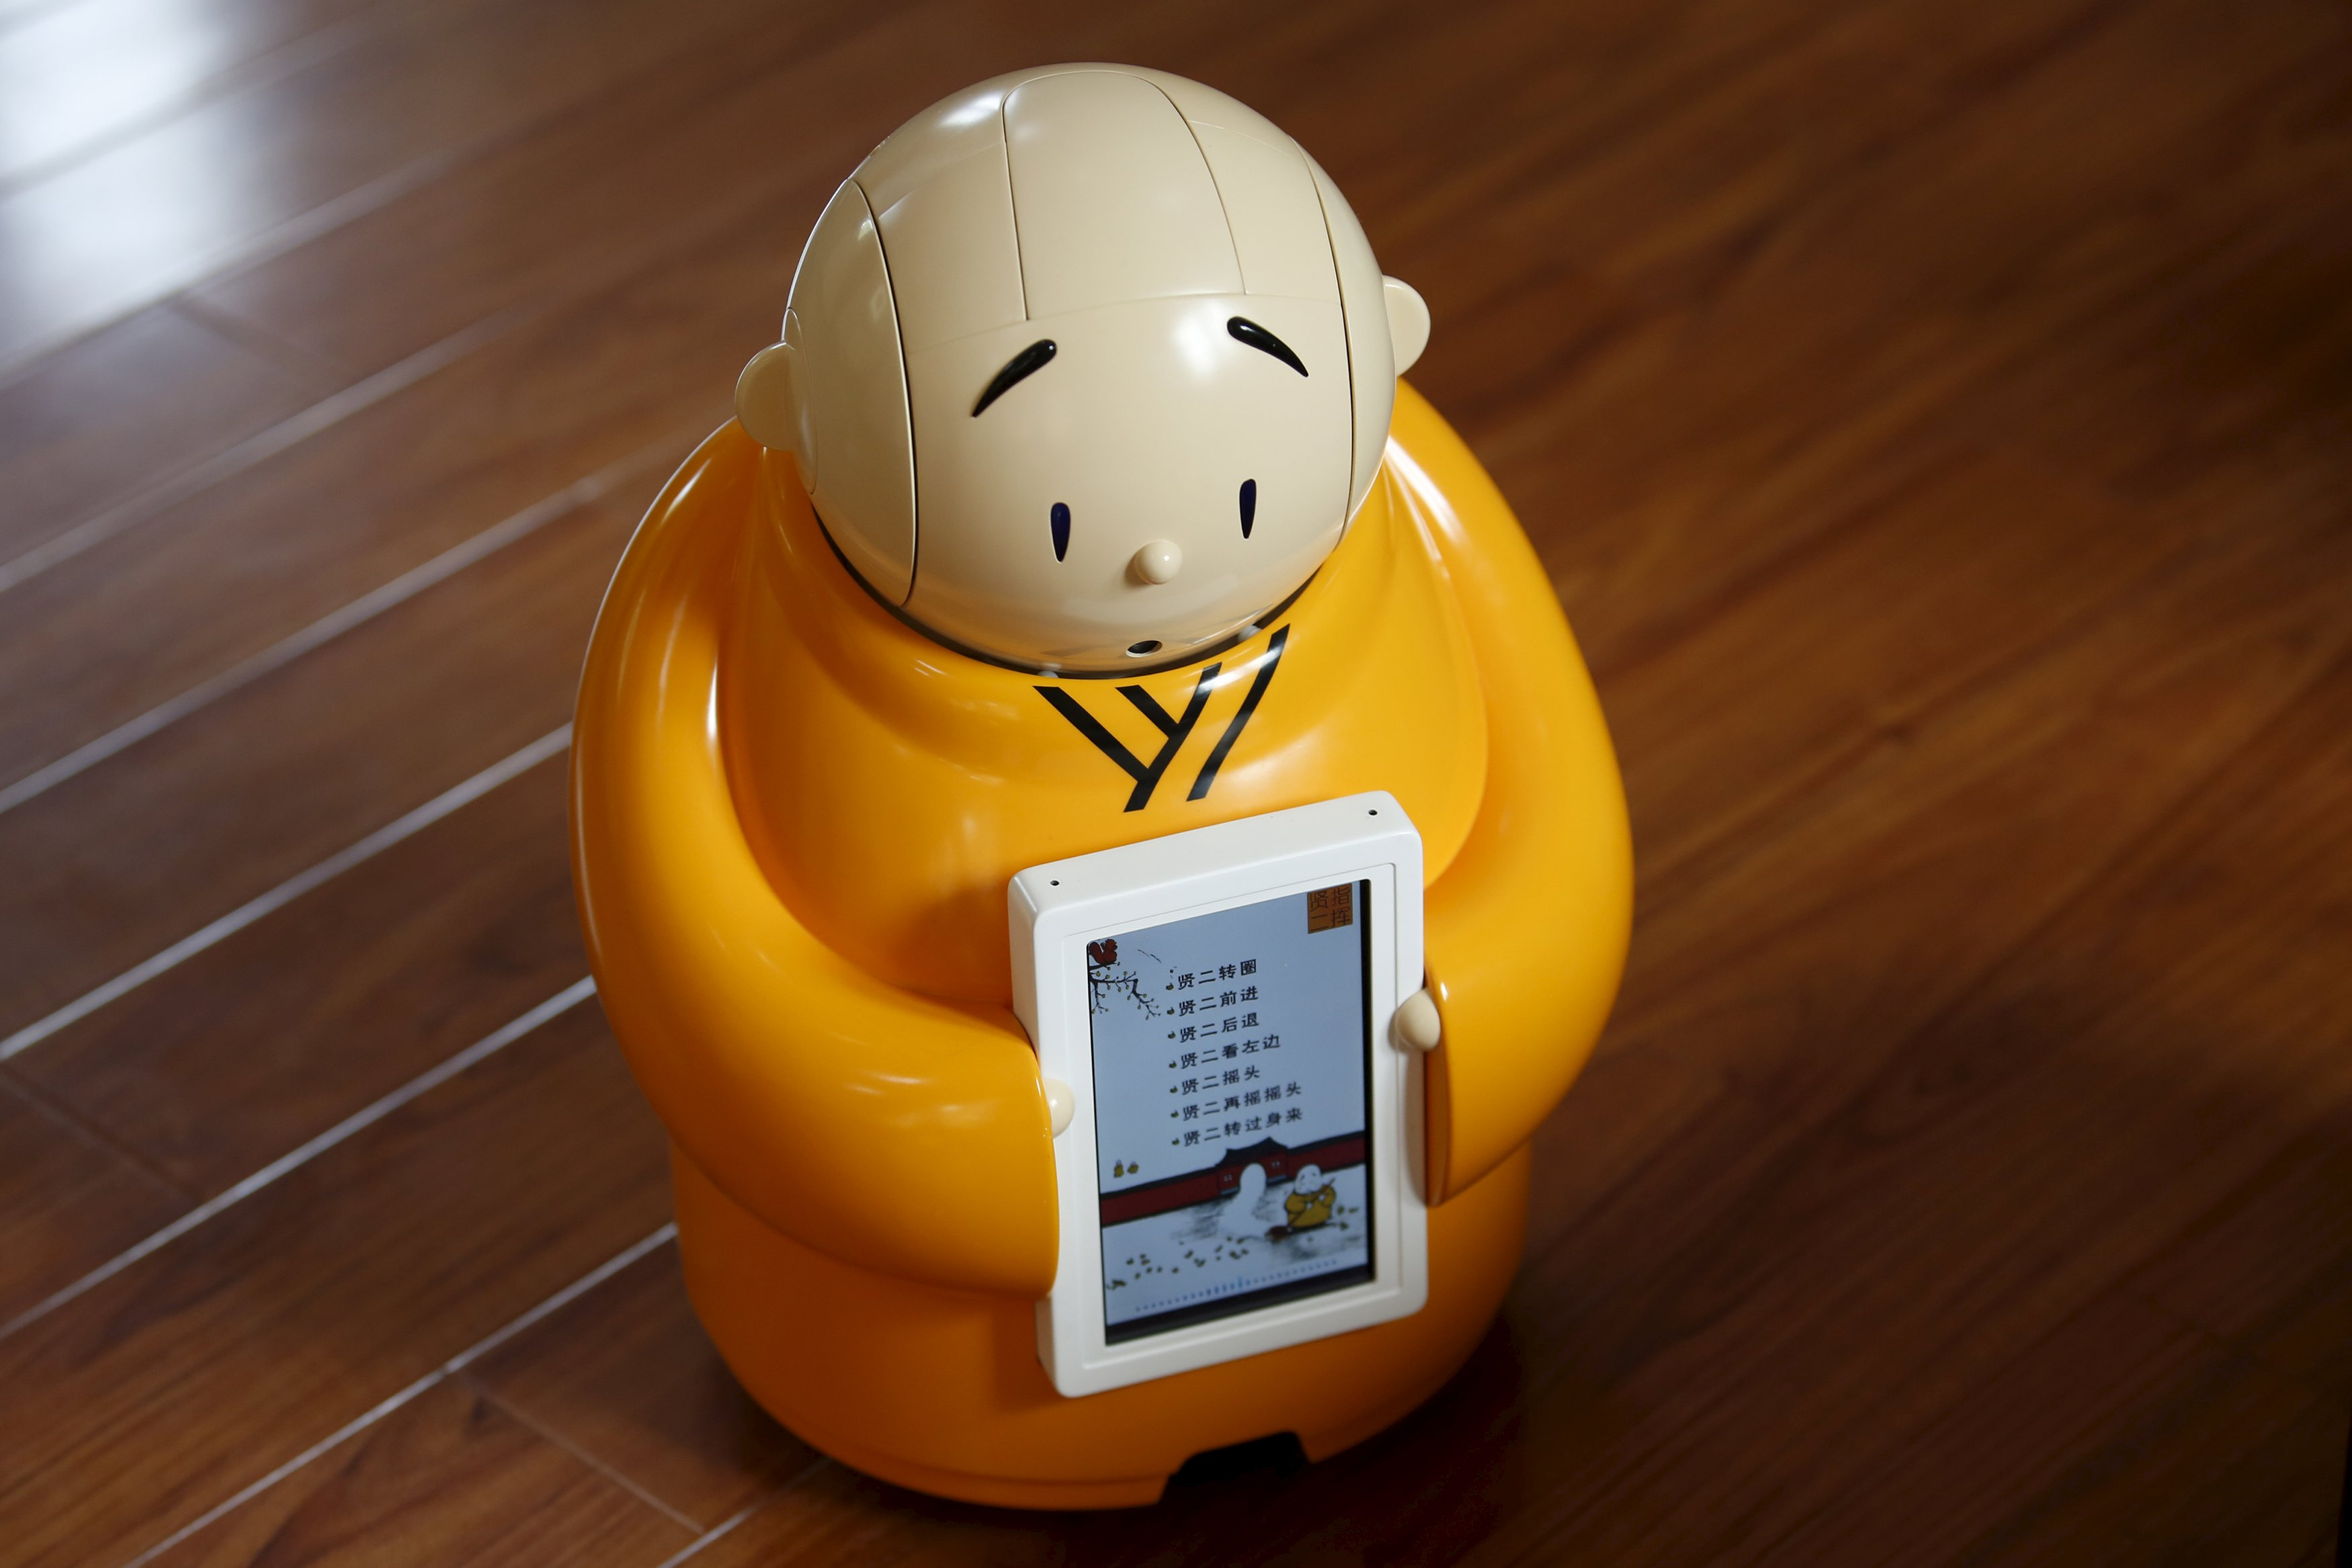 Robot monk Xian'er is pictured during its demonstration for a photo opportunity at Longquan Buddhist temple on the outskirts of Beijing, April 20, 2016. REUTERS/Kim Kyung-Hoon